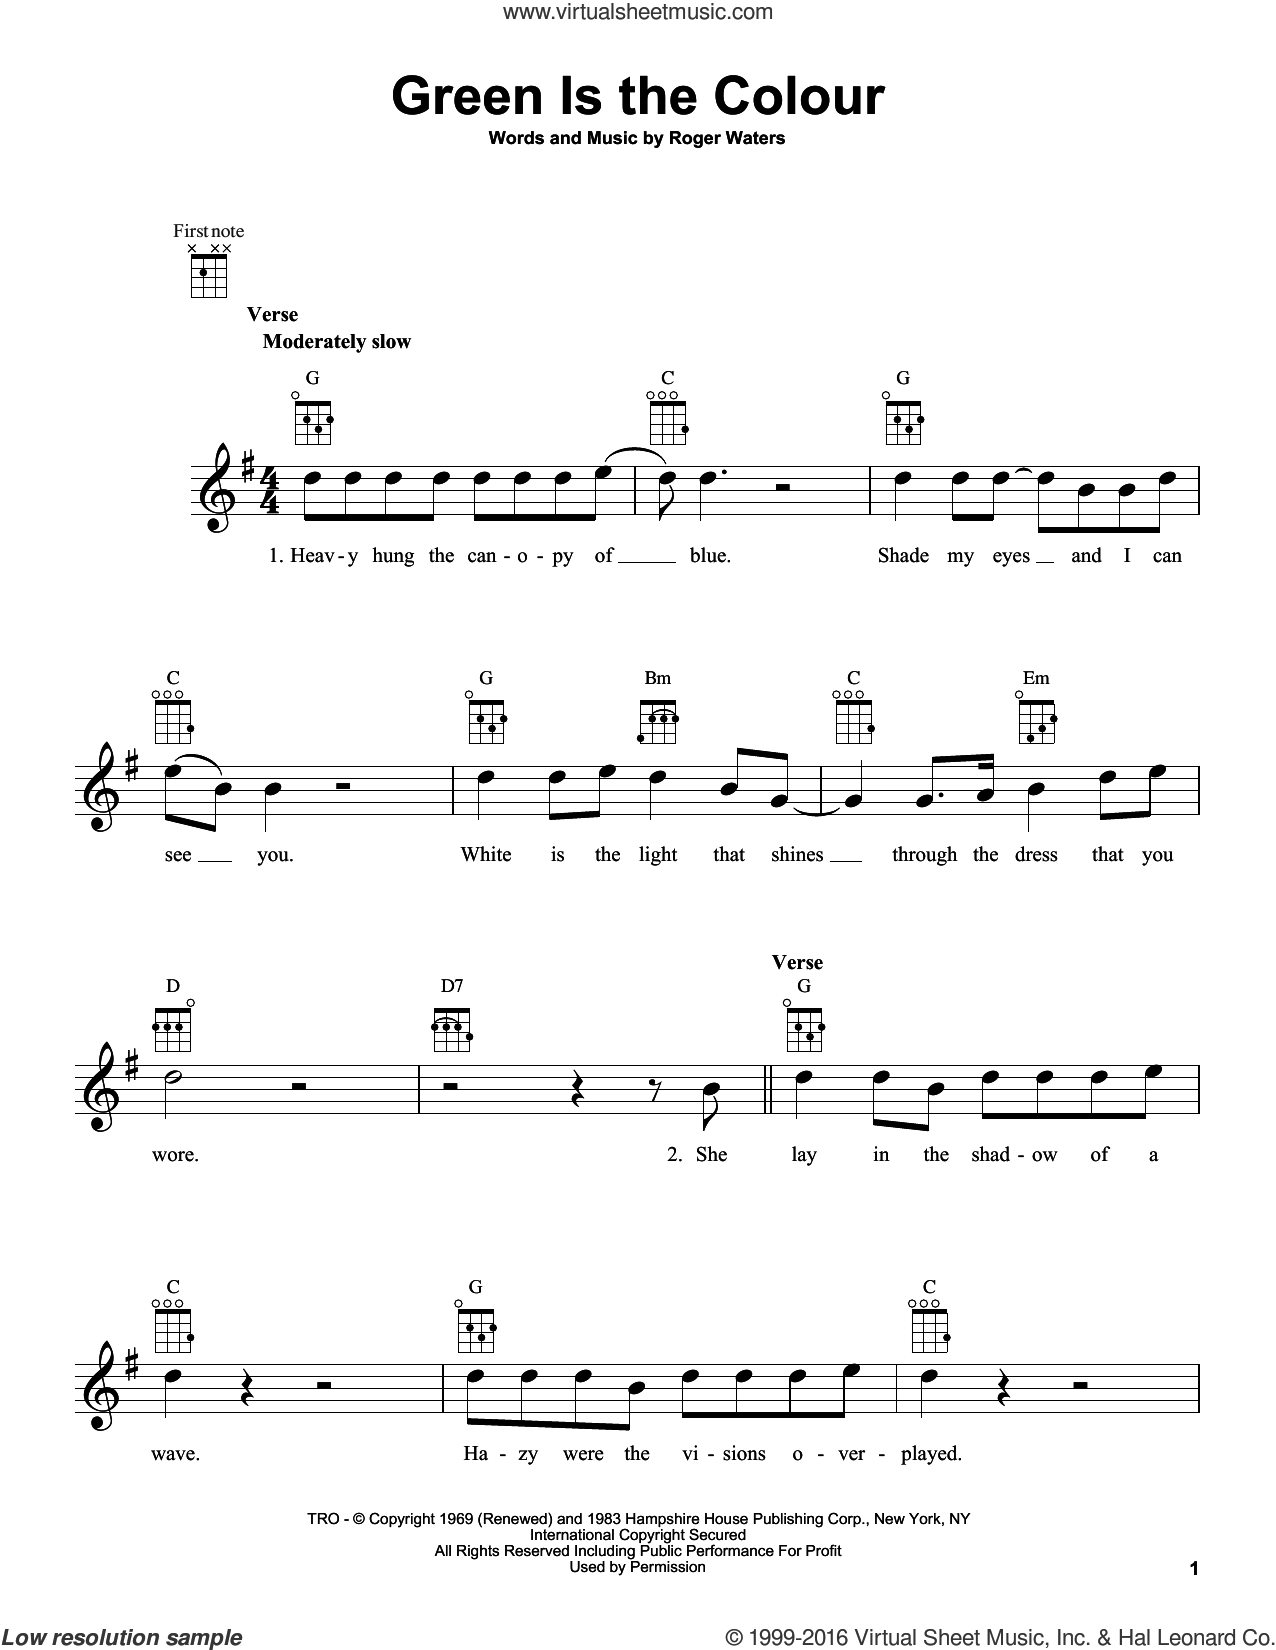 Green Is The Colour sheet music for ukulele by Roger Waters and Pink Floyd. Score Image Preview.